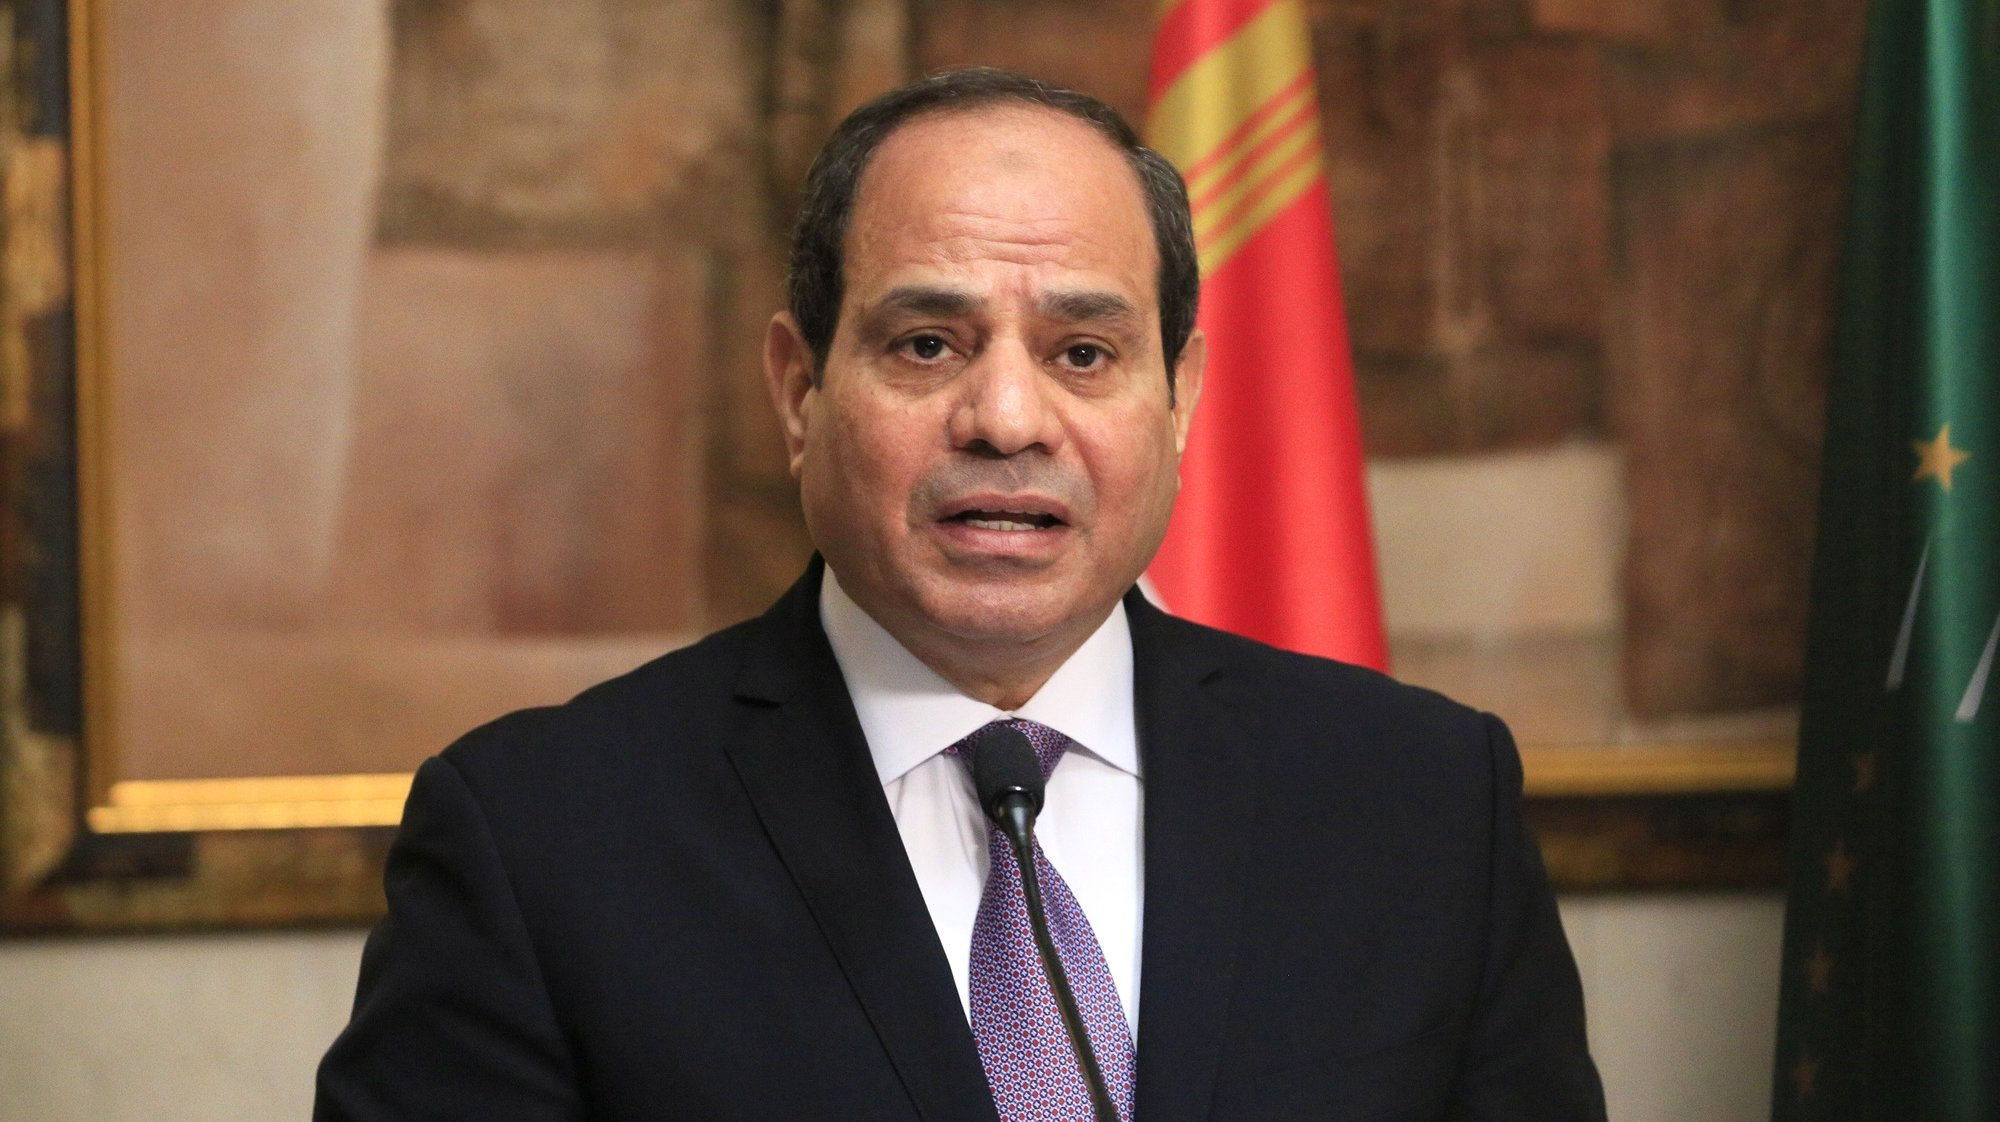 epa07498774 Egypt's President Abdel Fattah al-Sissi speaks at the presidential palace in Abidjan during a welcoming ceremony in Abijan, Ivory Coast, 11 April 2019. The President of the Arab Republic of Egypt Abdel Fattah Al-Sissi arrived Wednesday evening in Abidjan where he makes a visit of friendship and work of 48 hours. This visit of the Egyptian president in Ivory Coast is part of the part of a West African tour he began Sunday in Guinea. After the Ivorian stage, Abdel Fattah Al-Sissi is expected in Senegal.  EPA/LEGNAN KOULA